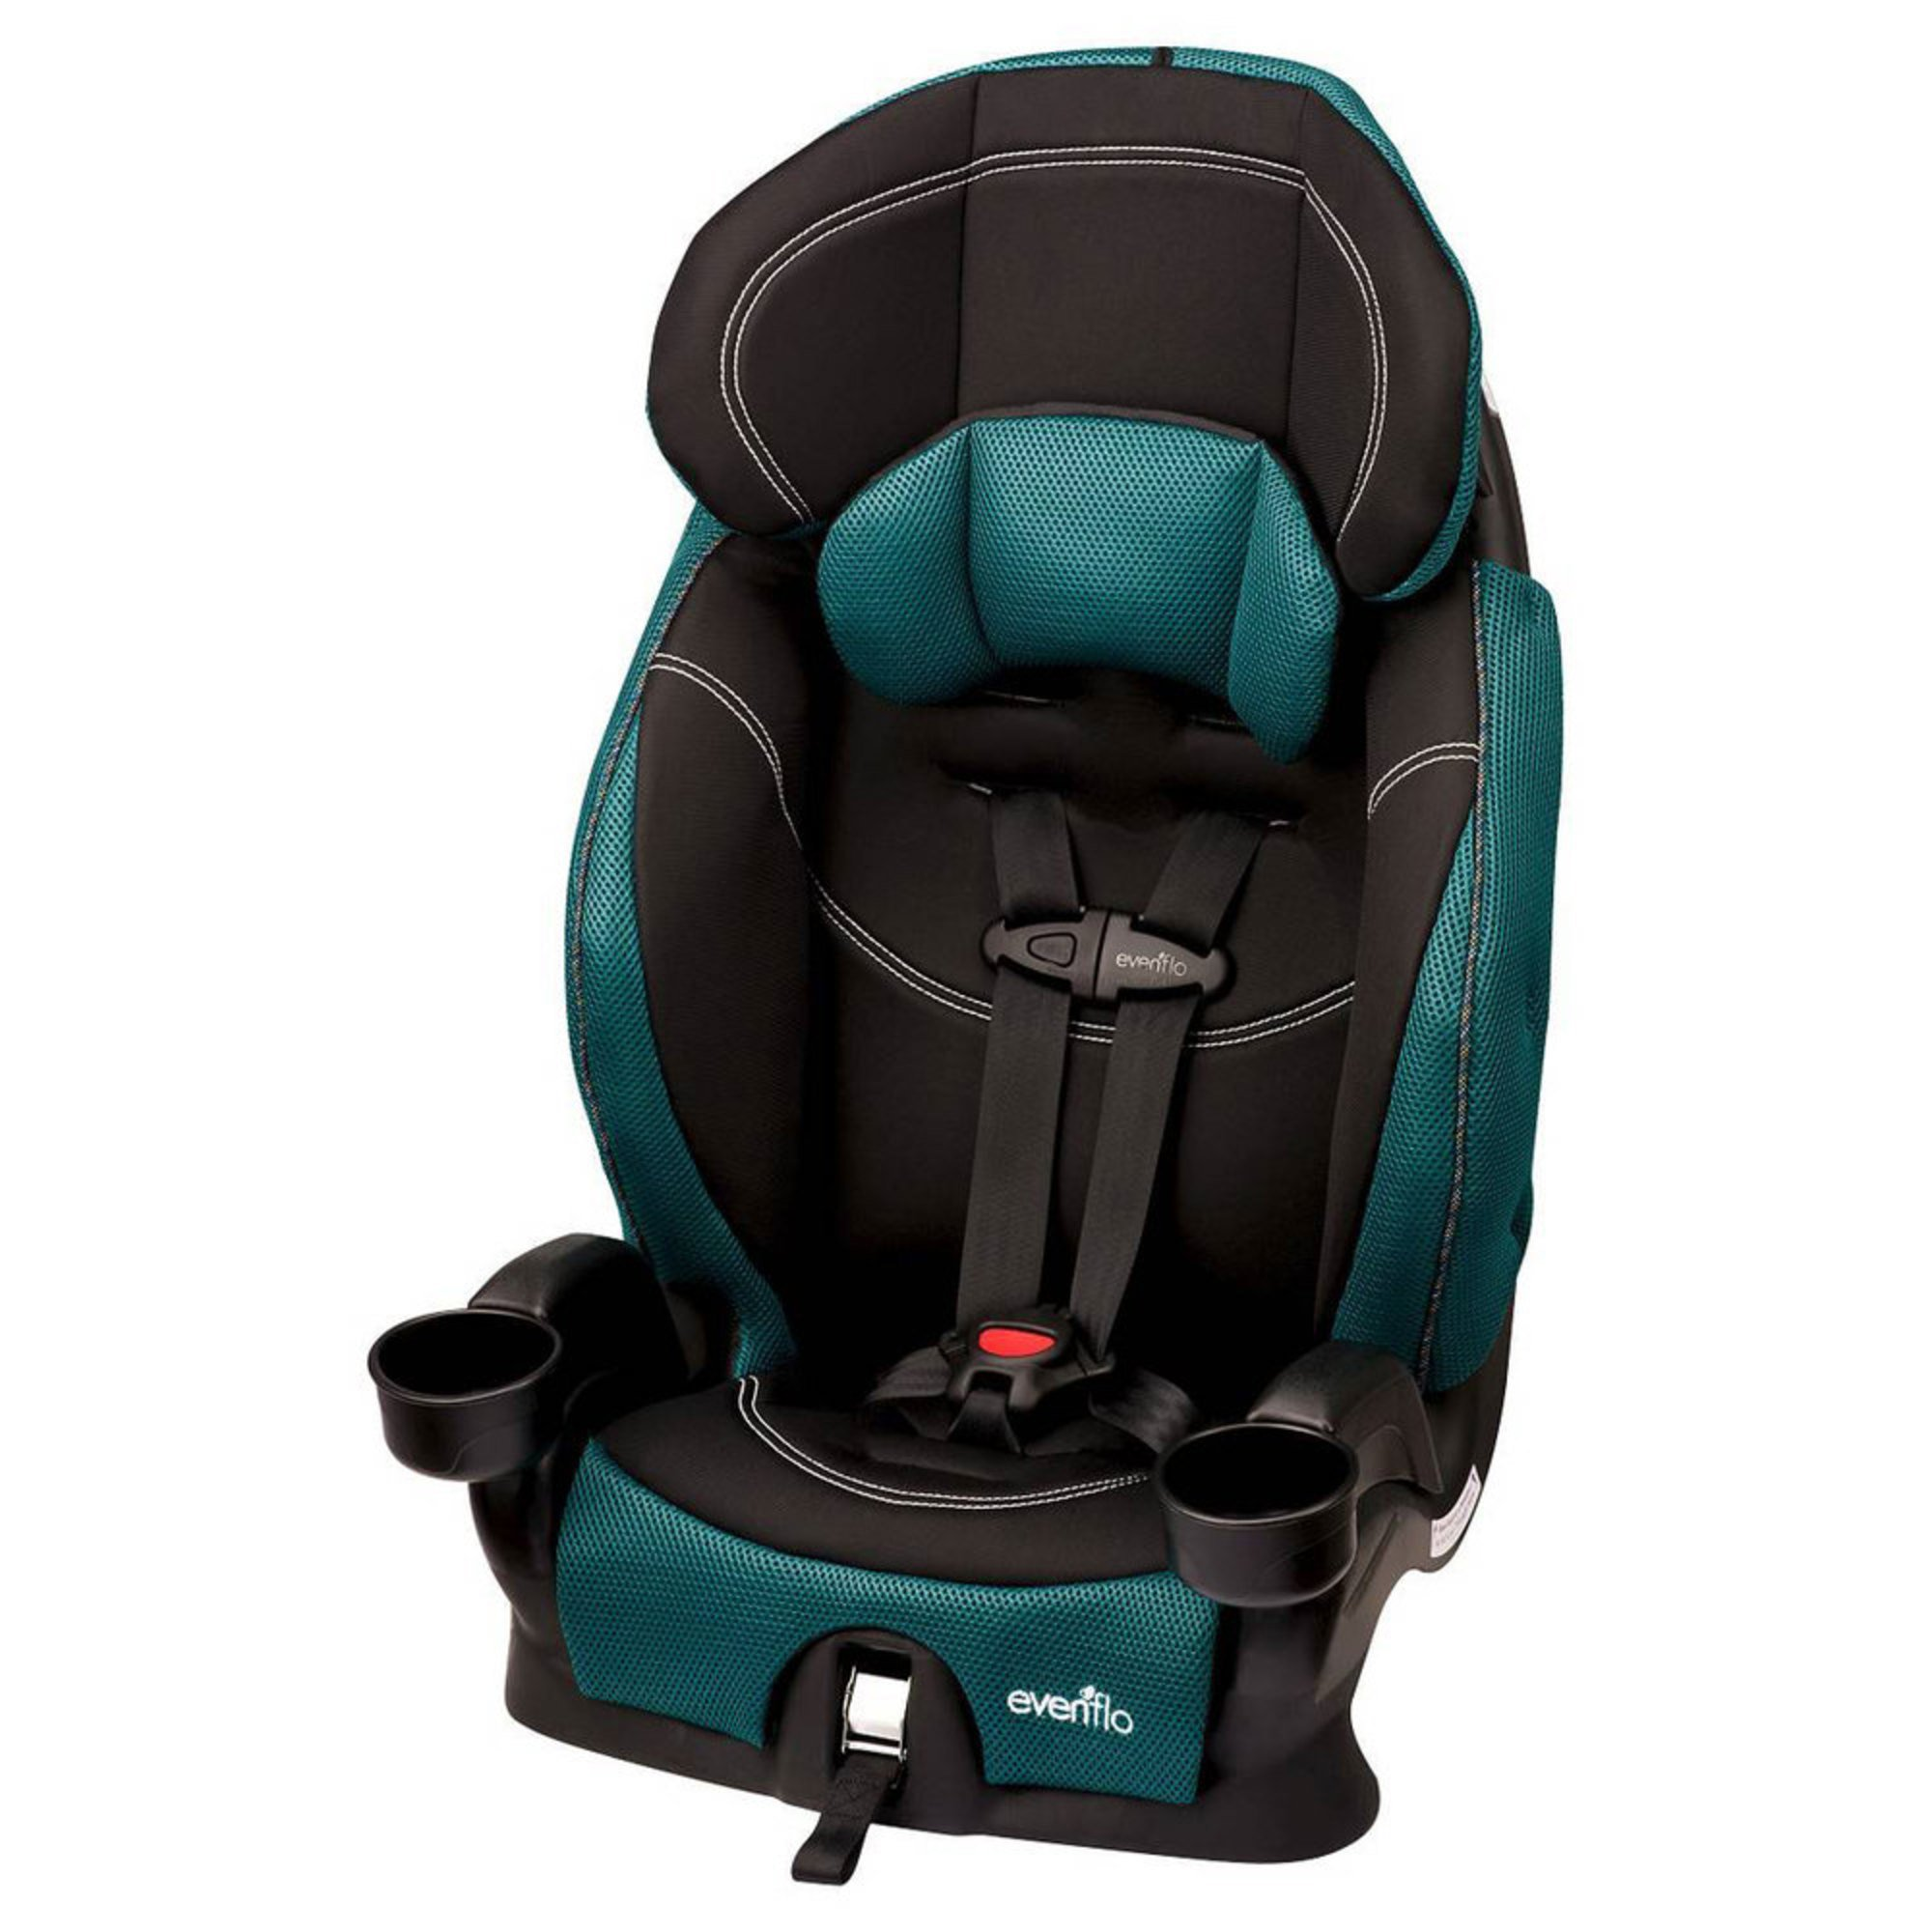 Wondrous Evenflo Chase Lx Booster Seat Jubilee Gamerscity Chair Design For Home Gamerscityorg